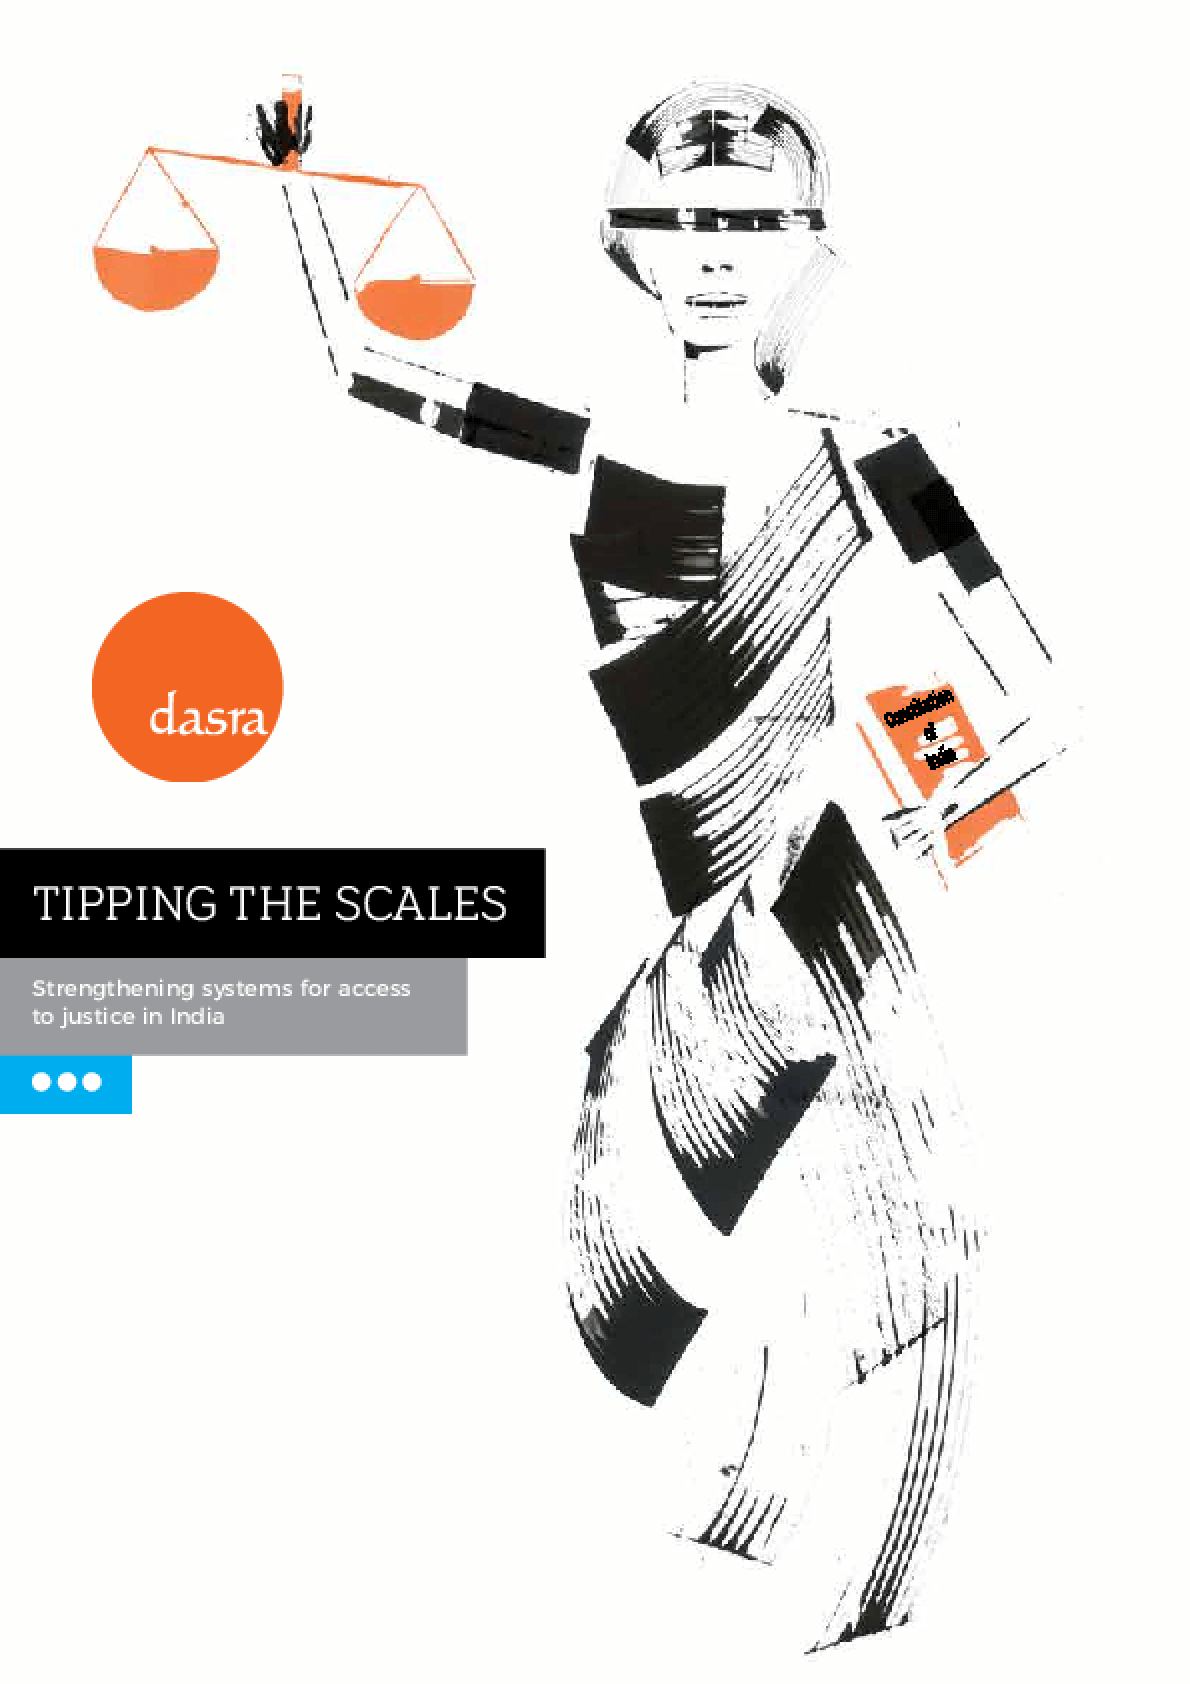 Tipping the Scales: Strengthening systems for access to justice in India